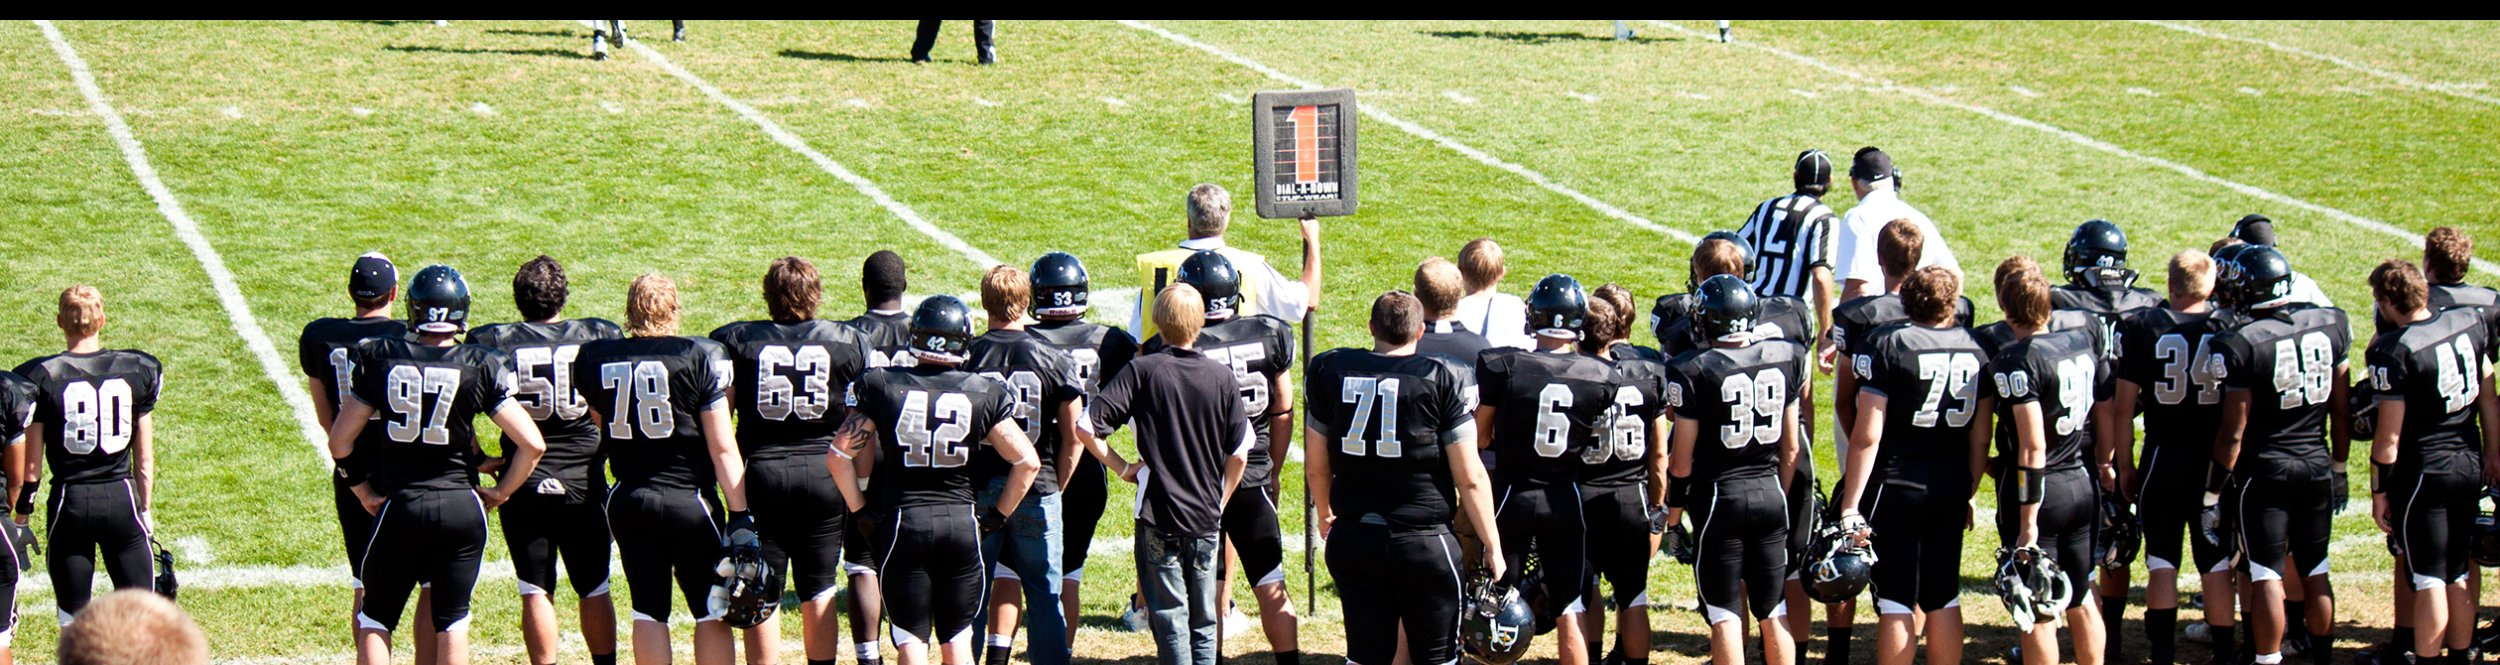 Dordt football players gather on the edge of the field.